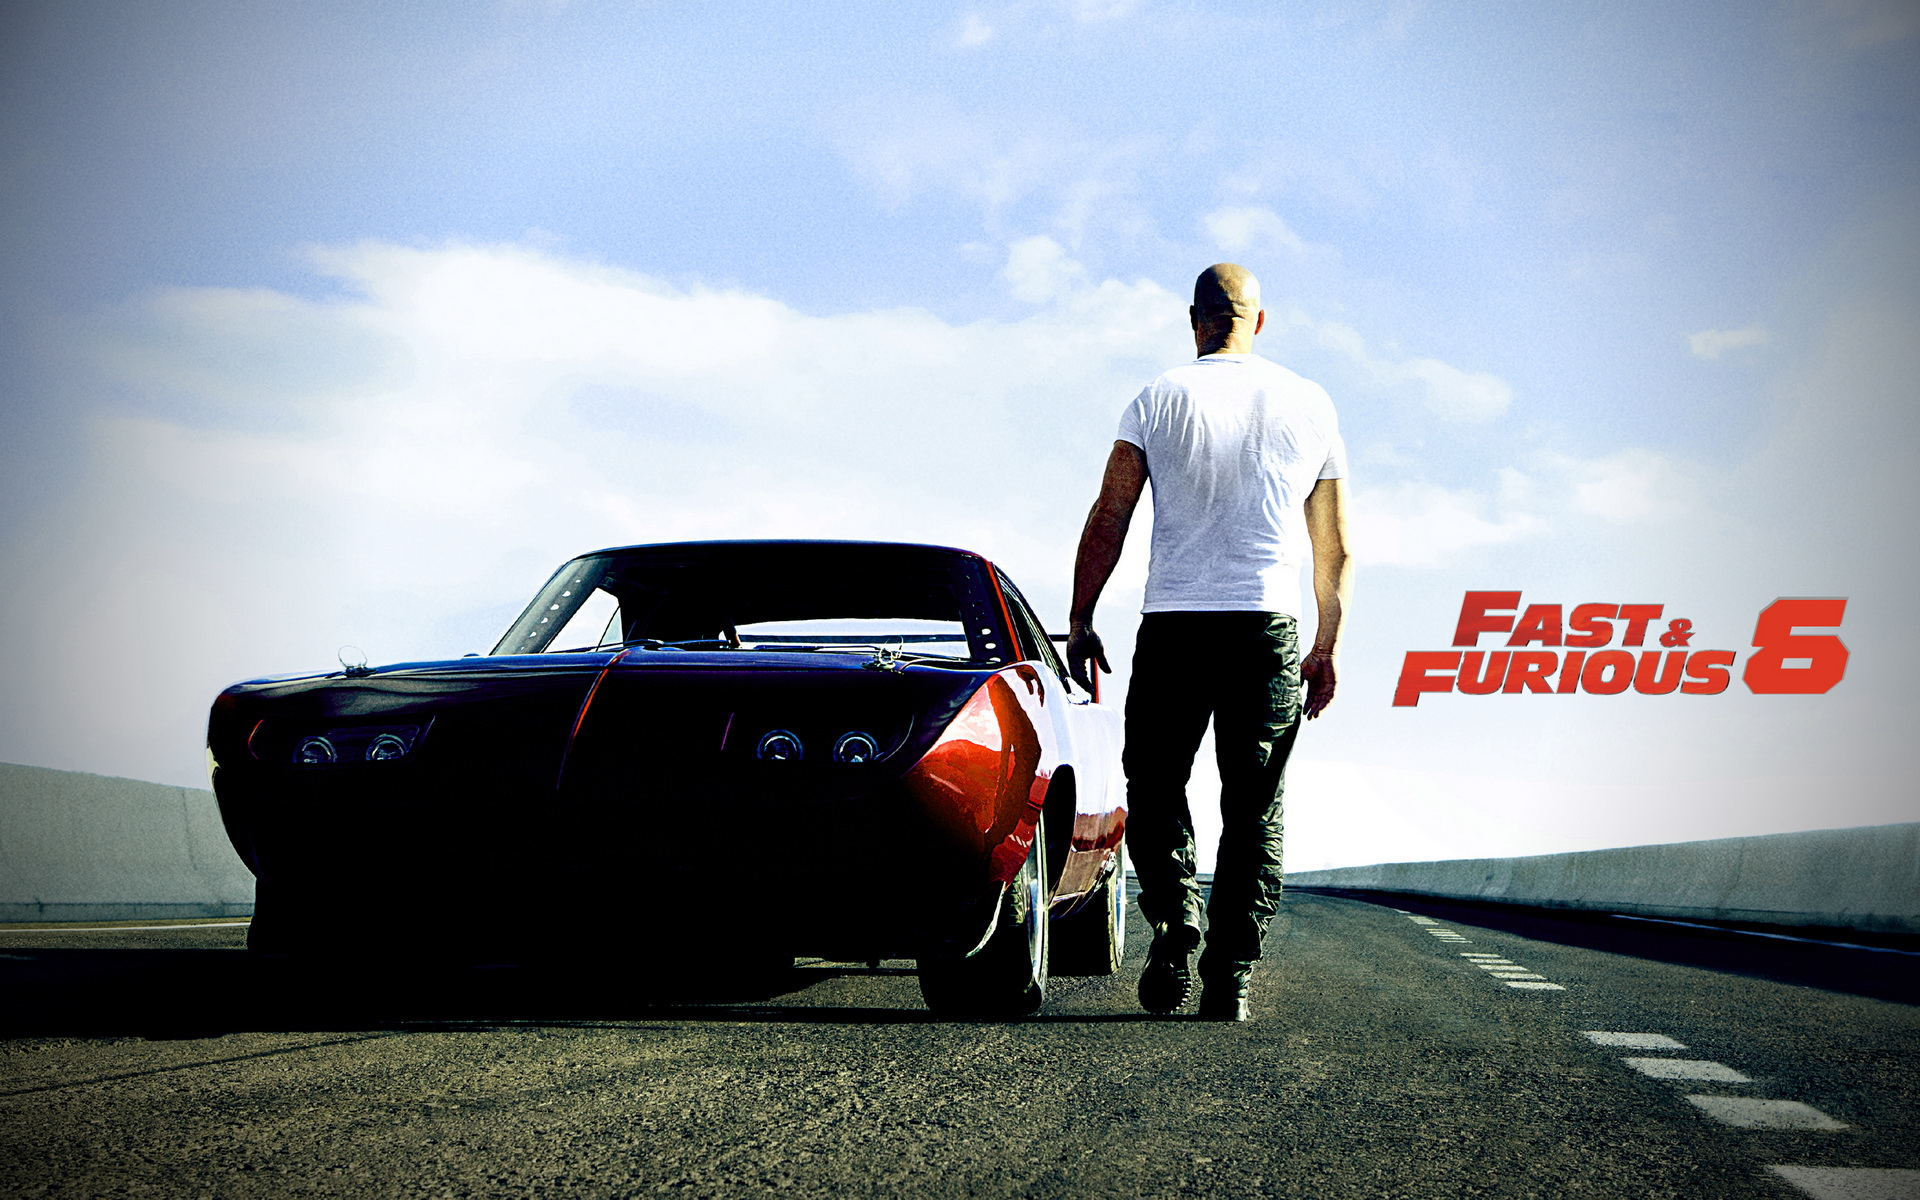 Fast-and-furious-6-cars-wallpapers-hd-4.jpg | HD ...